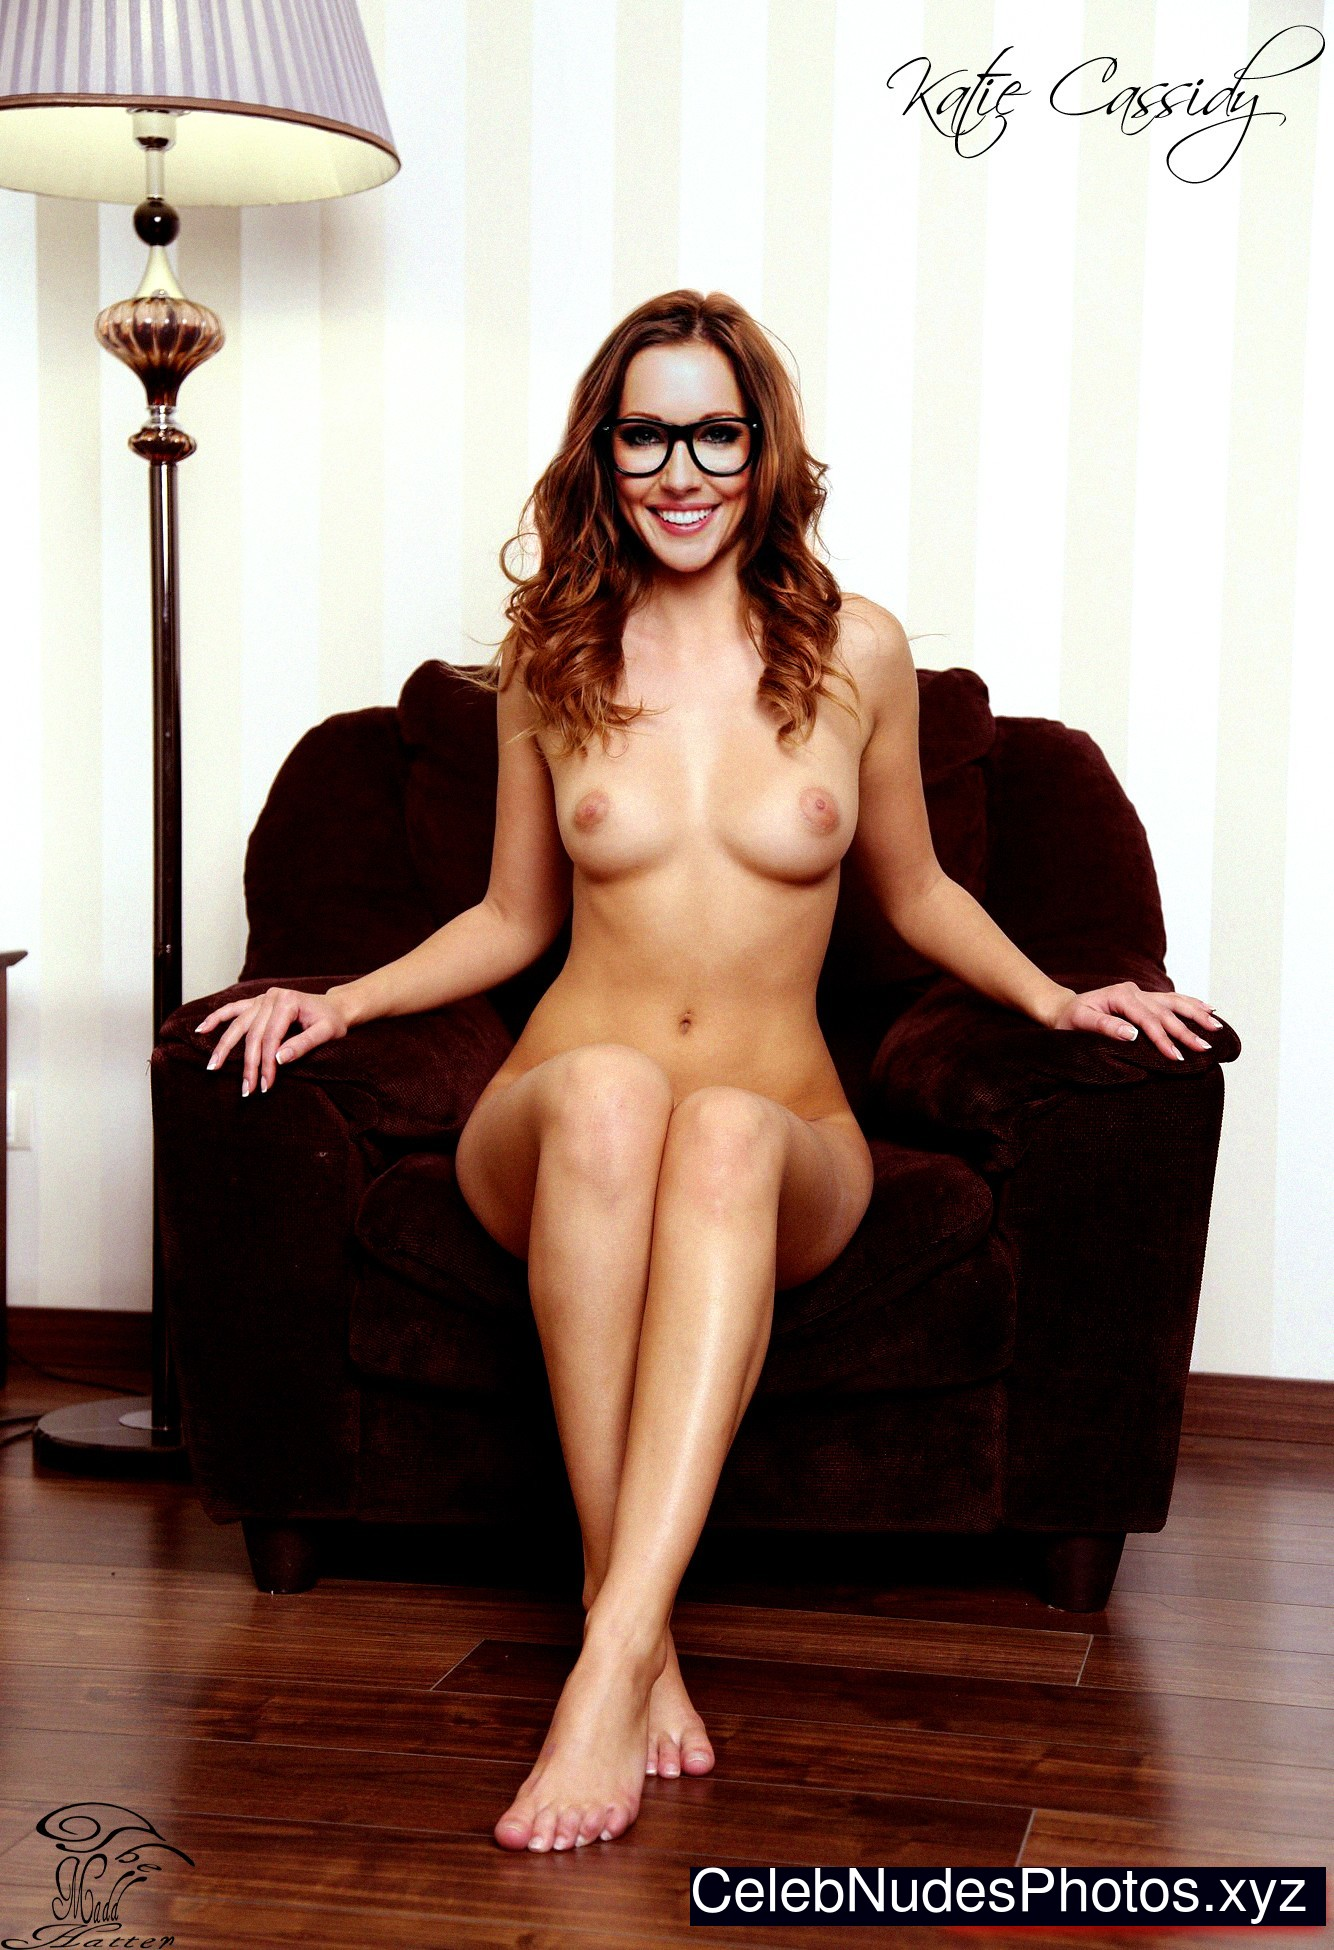 from Todd naked photos of katie cassidy